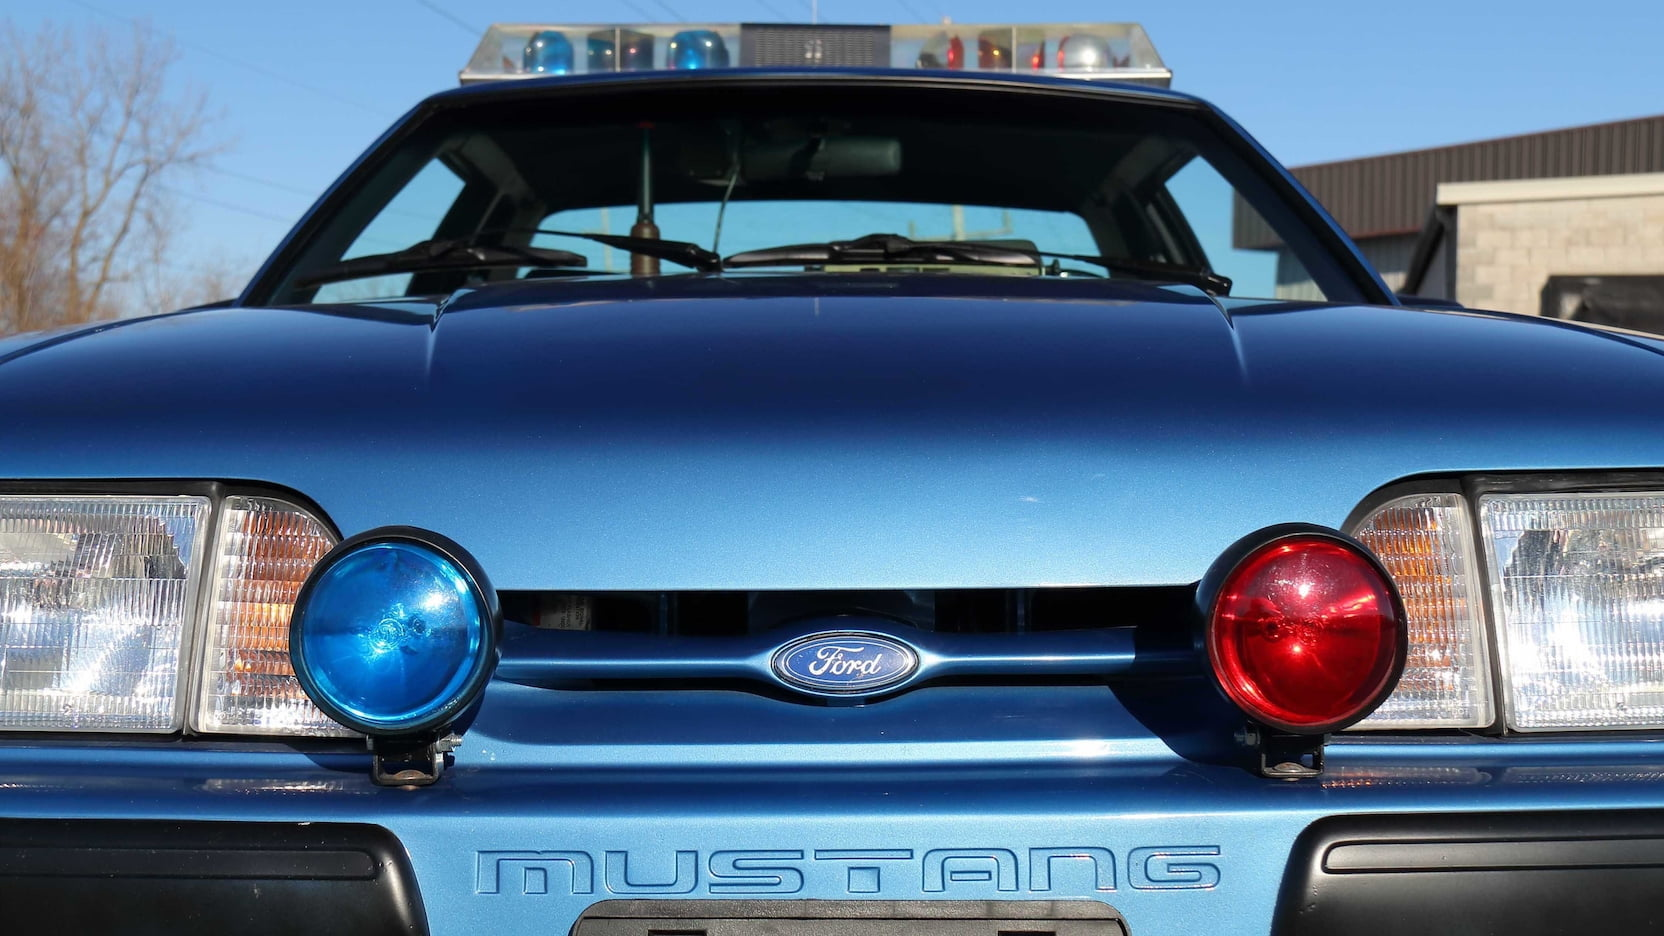 1989 Ford Mustang ssp police car front closeup